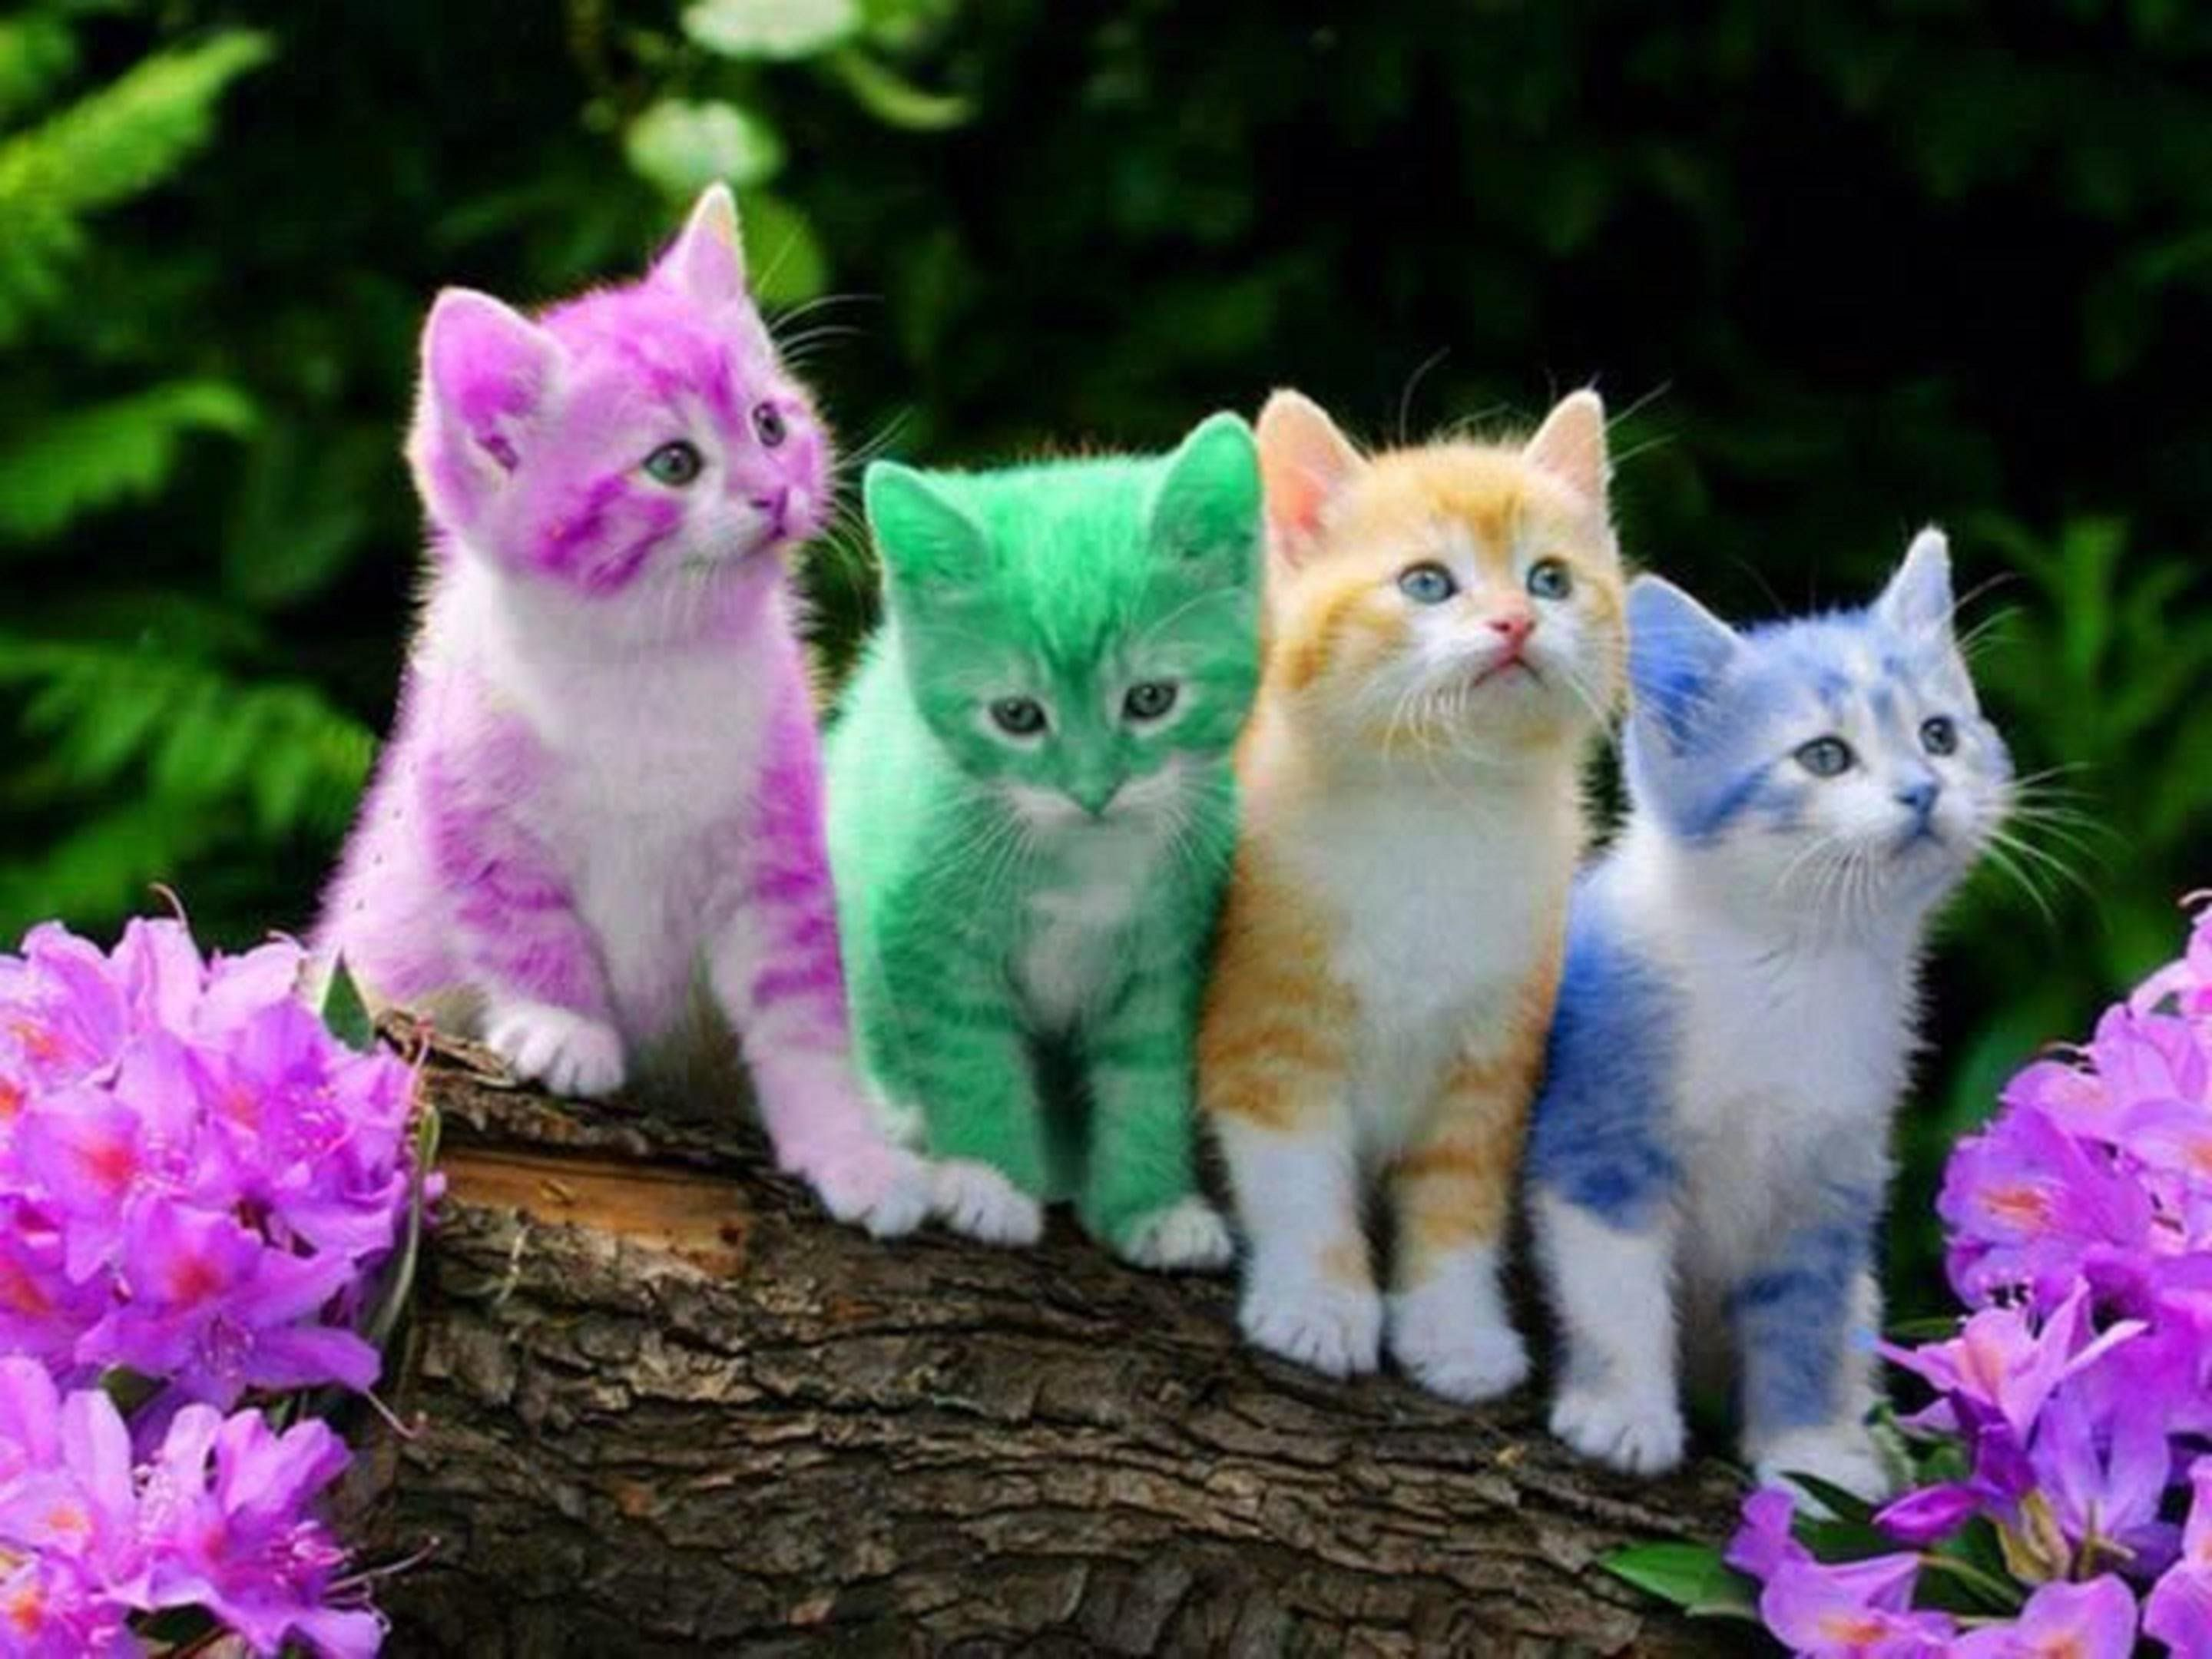 Cats Wallpapers Rainbow KIttens Kittens cutest, Cute